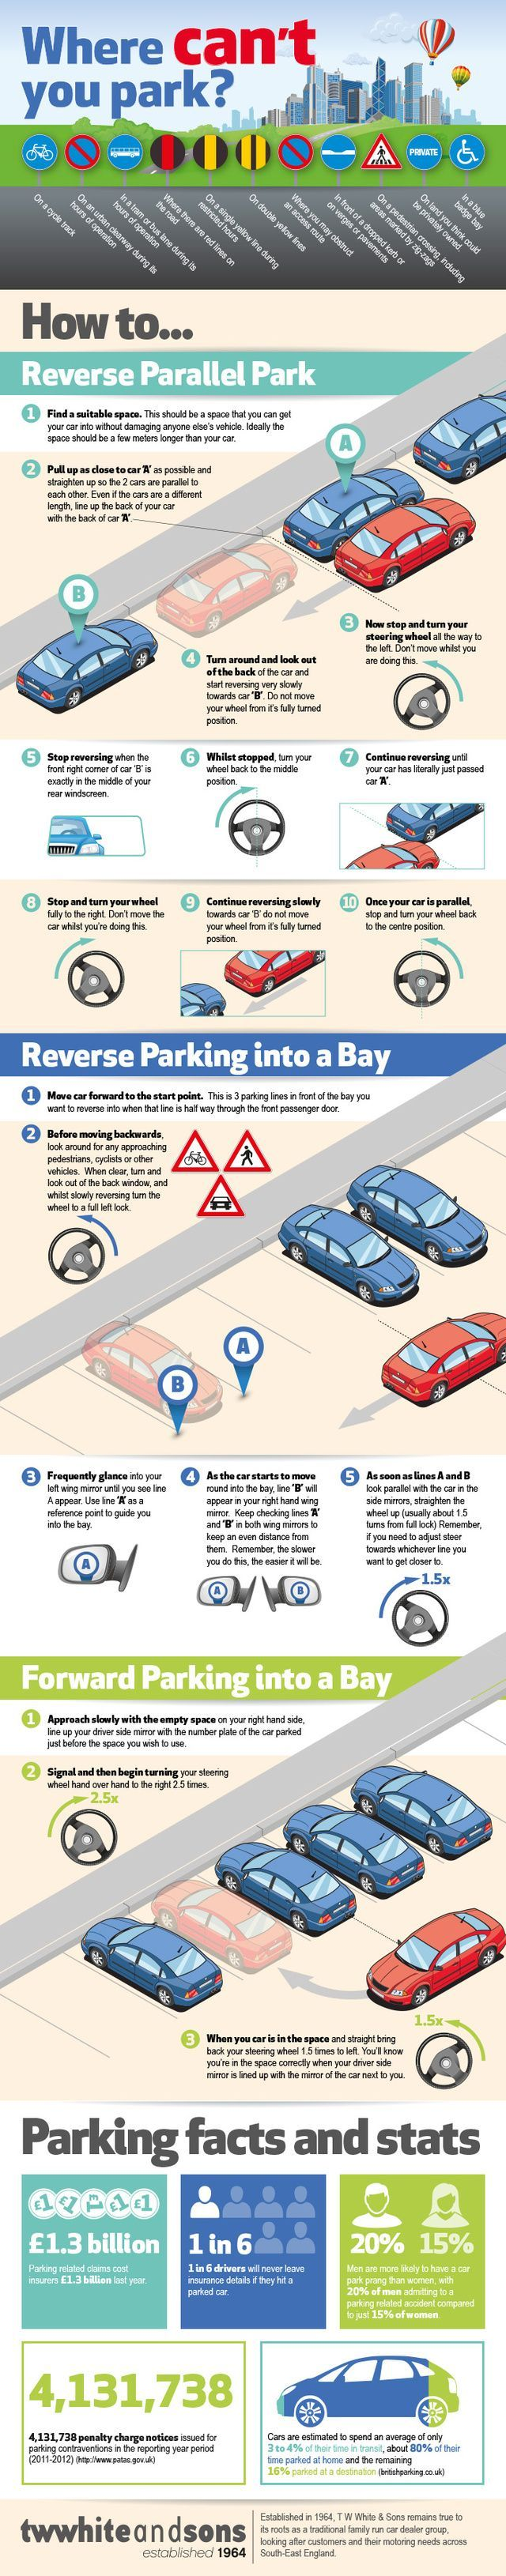 9425 Best Tech Images On Pinterest Technology Cool Stuff And Block Diagram Digital Clock Newhairstylesformen2014com Make Parking A Cinch With This Guide Infographic By T W White Sons Via Visually Lifehacker Driving Tips